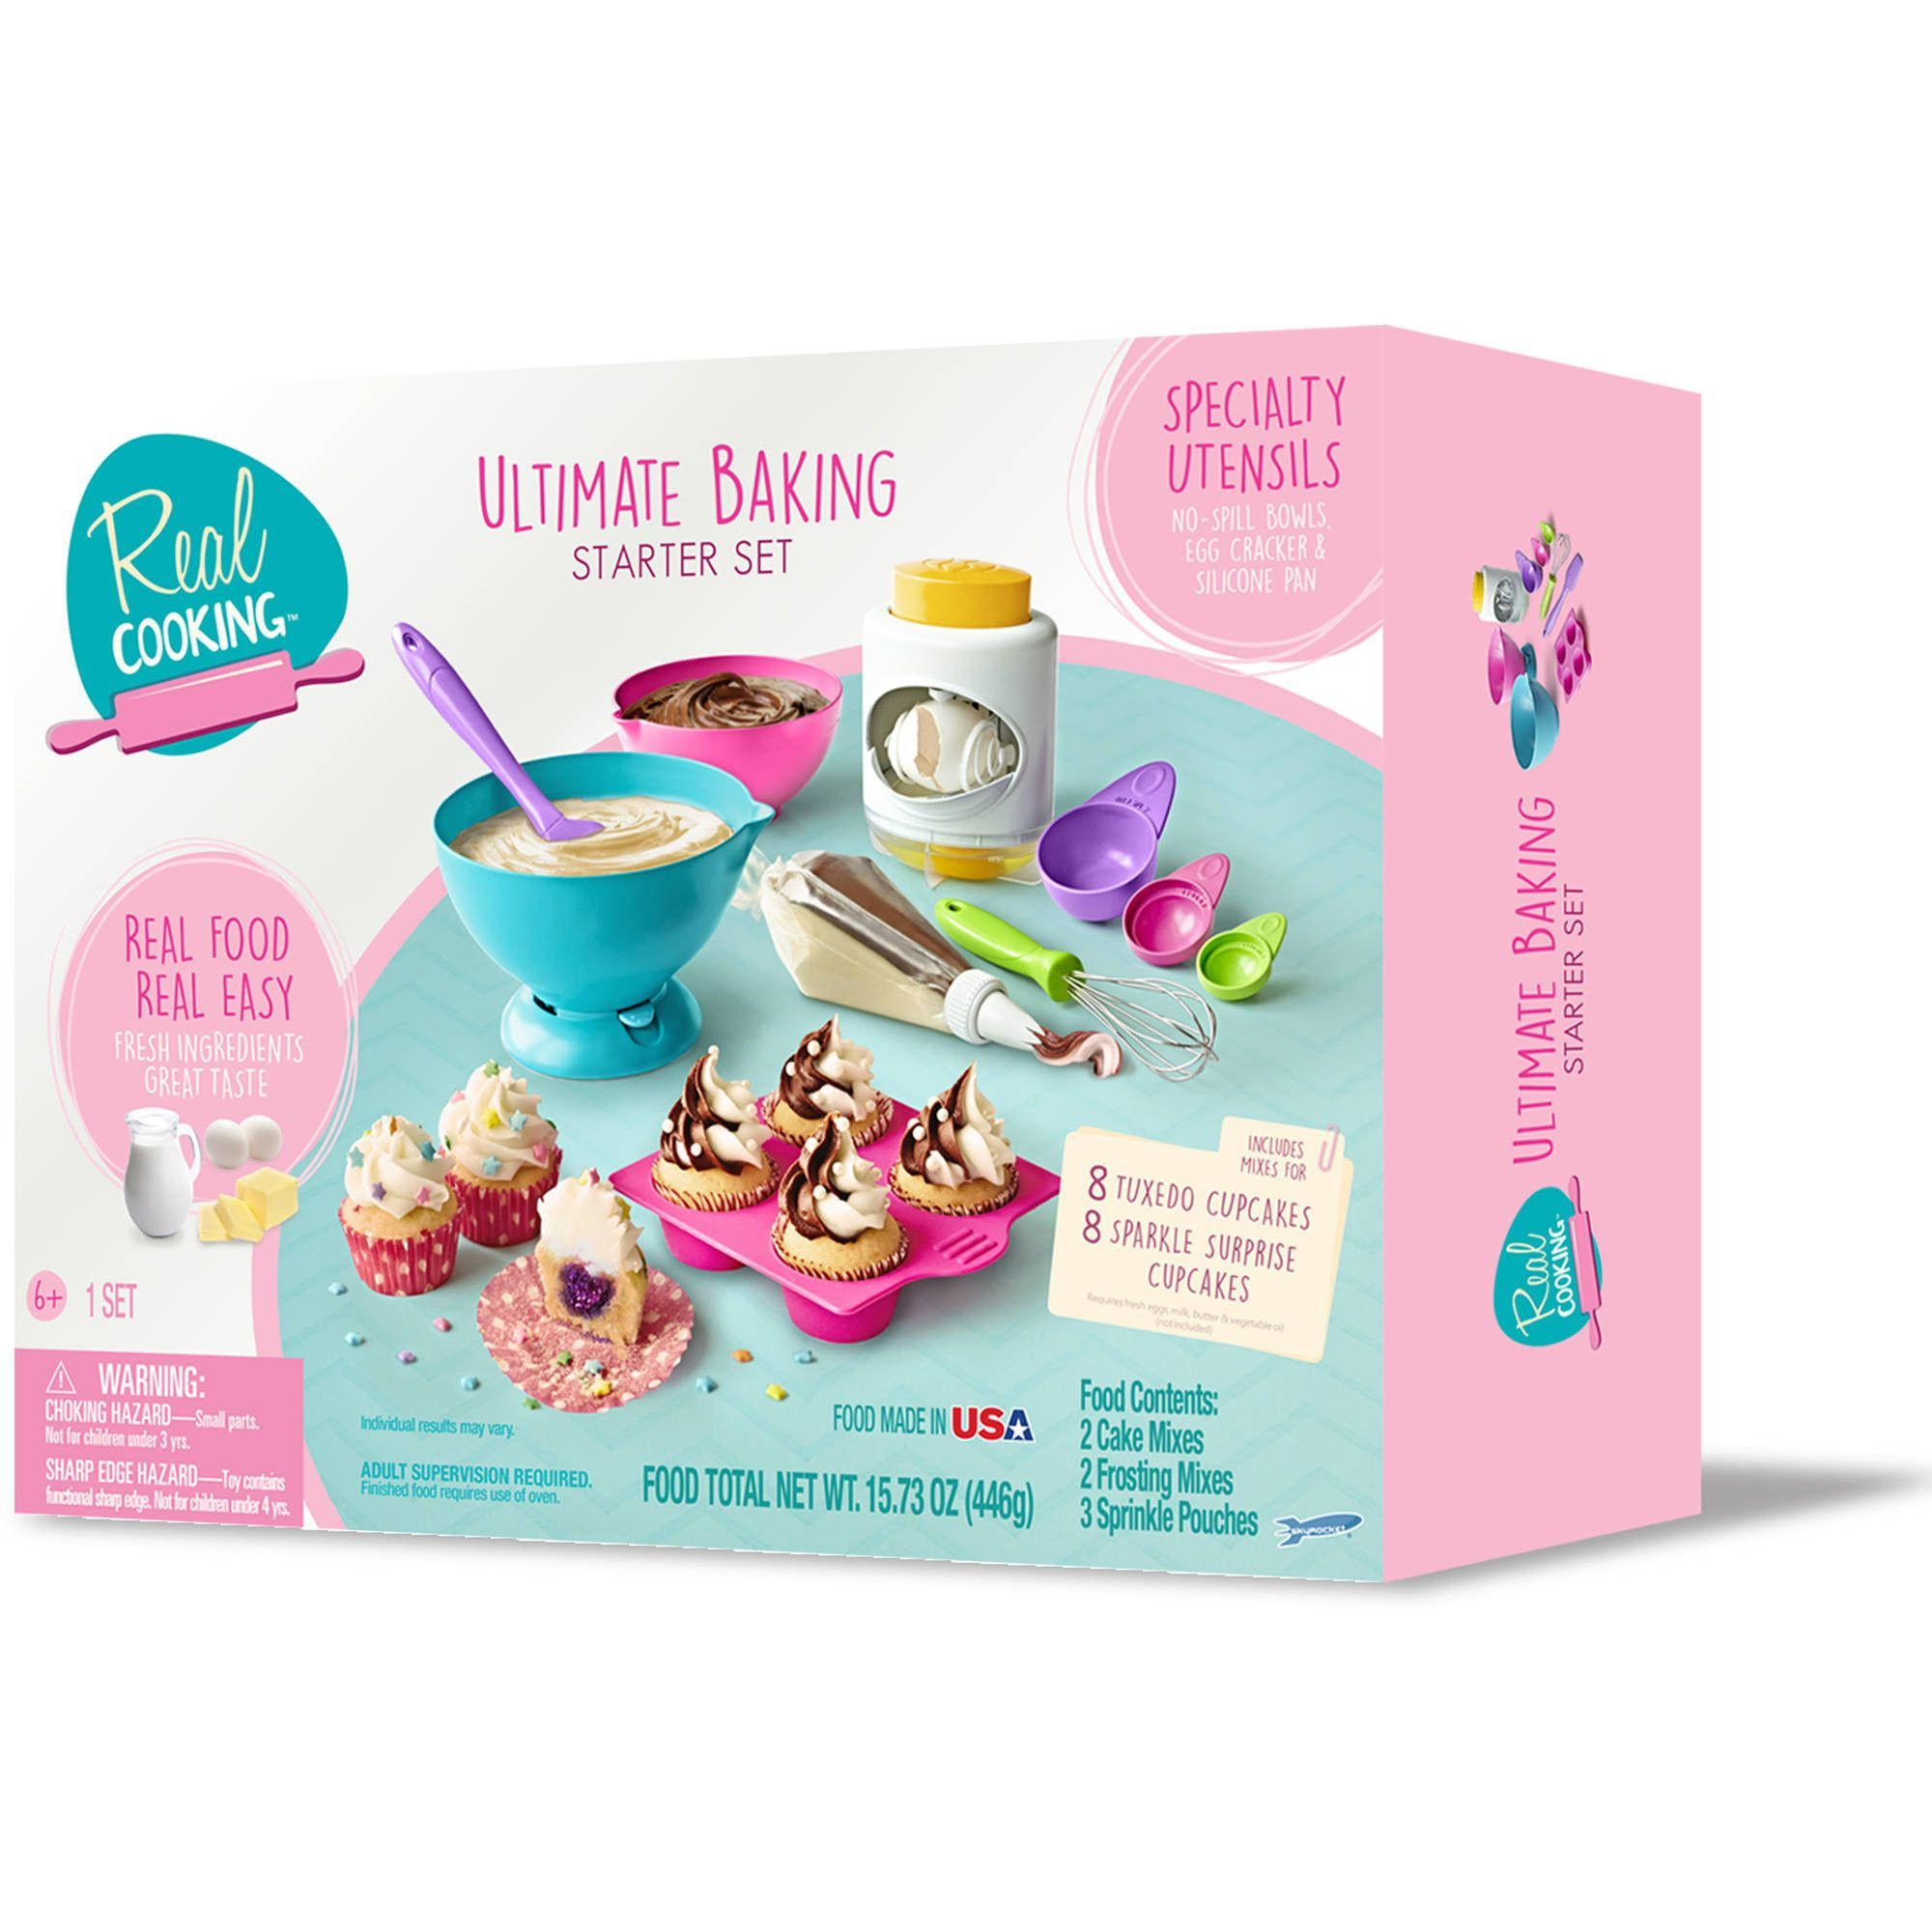 Real Cooking Ultimate Baking Starter Set | Products | Pinterest ...